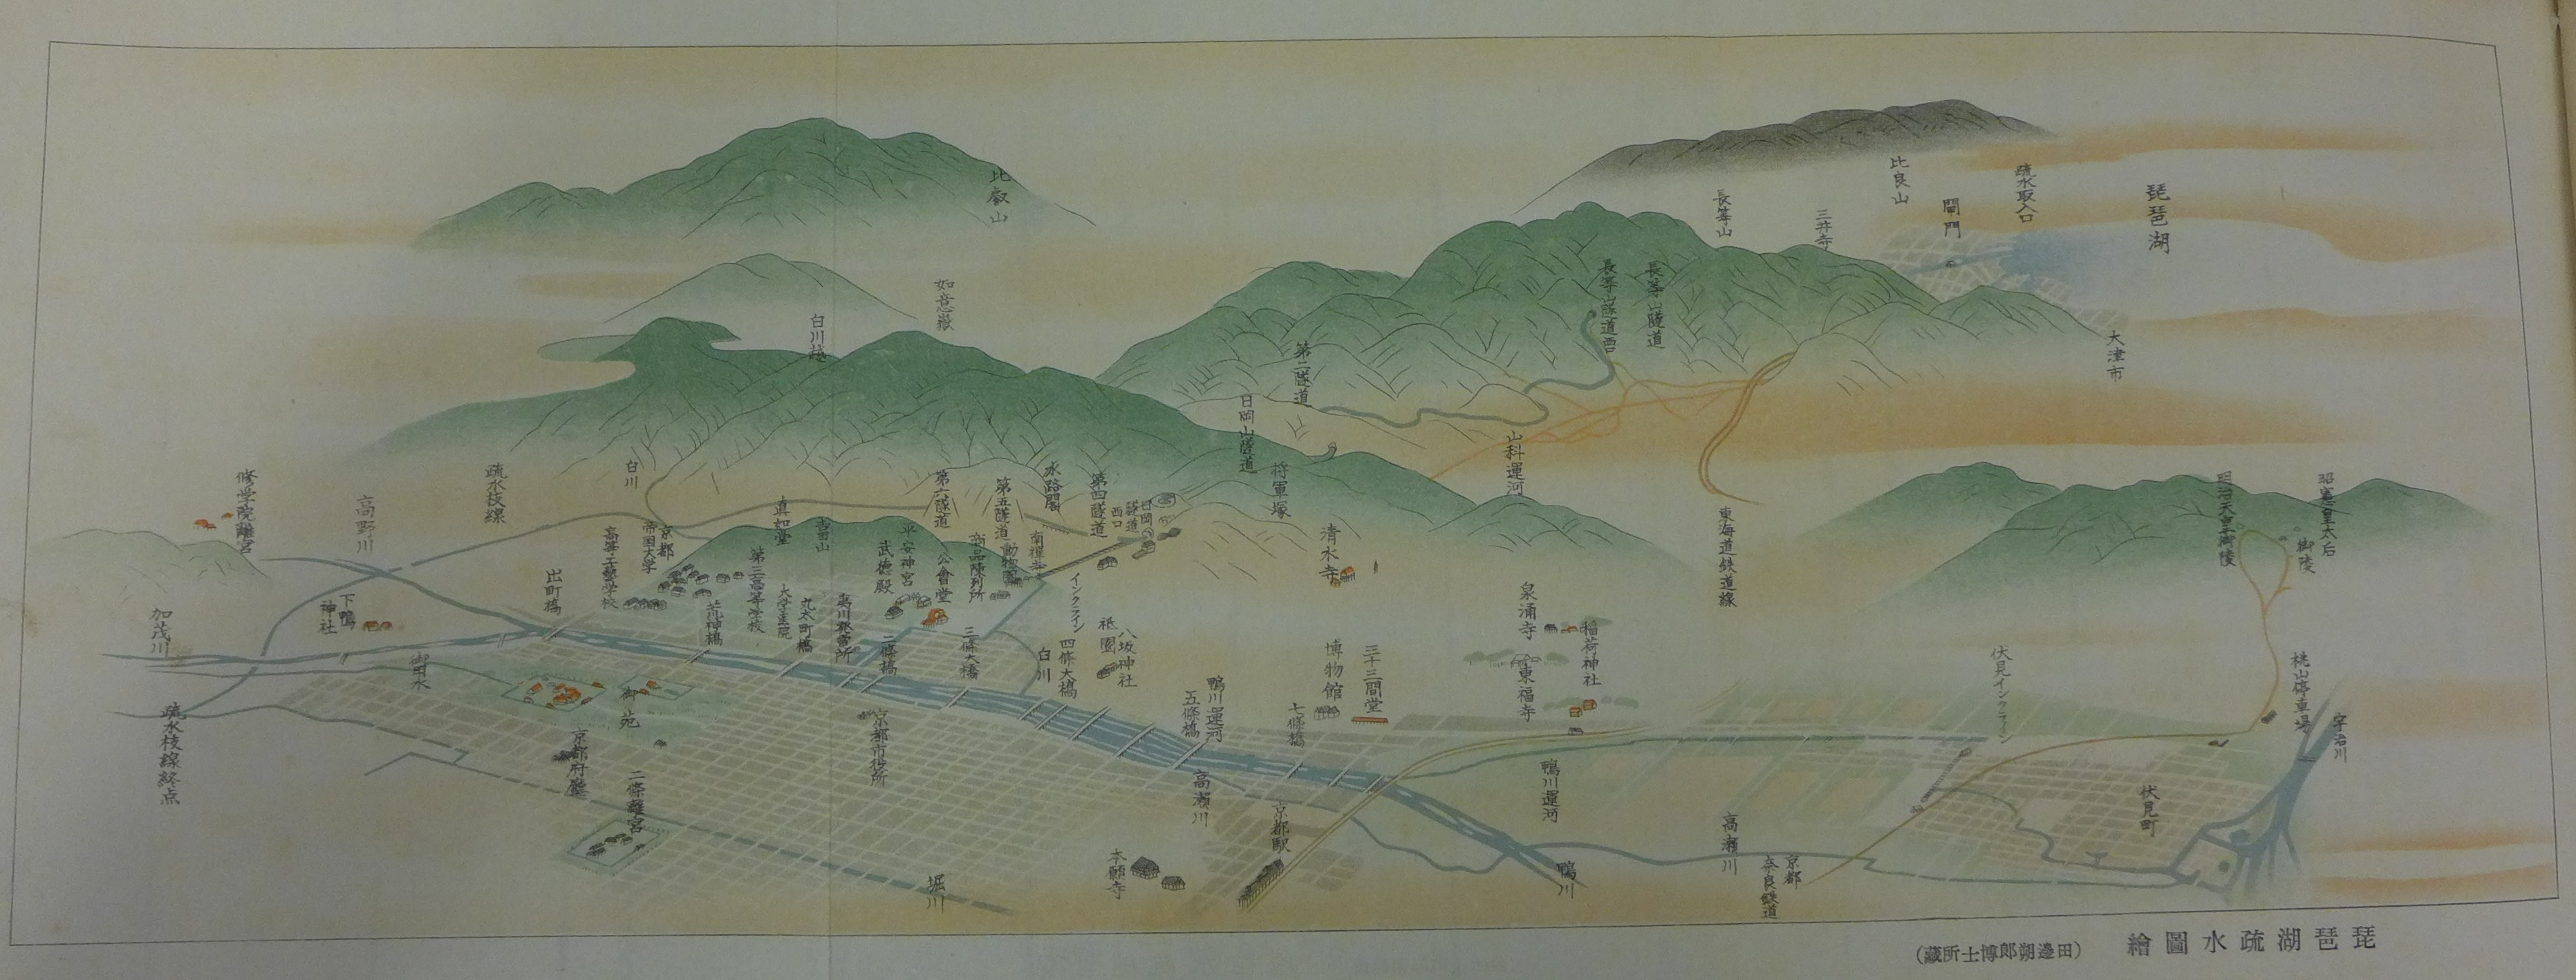 Biwako Canal Route Picture Map